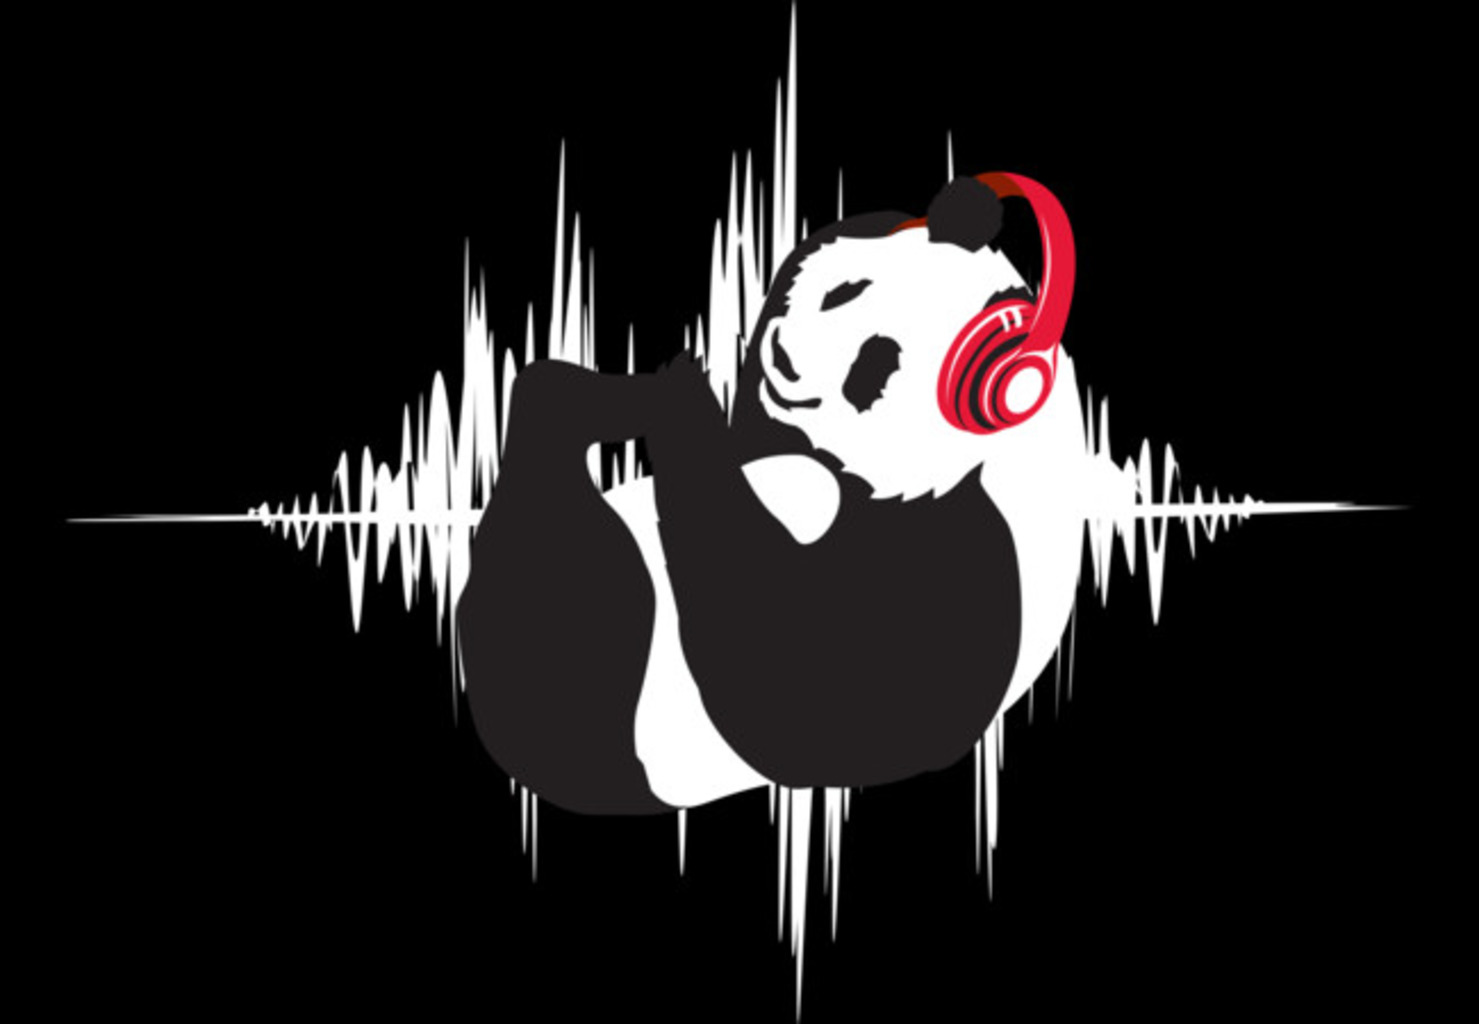 Design by Humans: Rock n Roll Panda